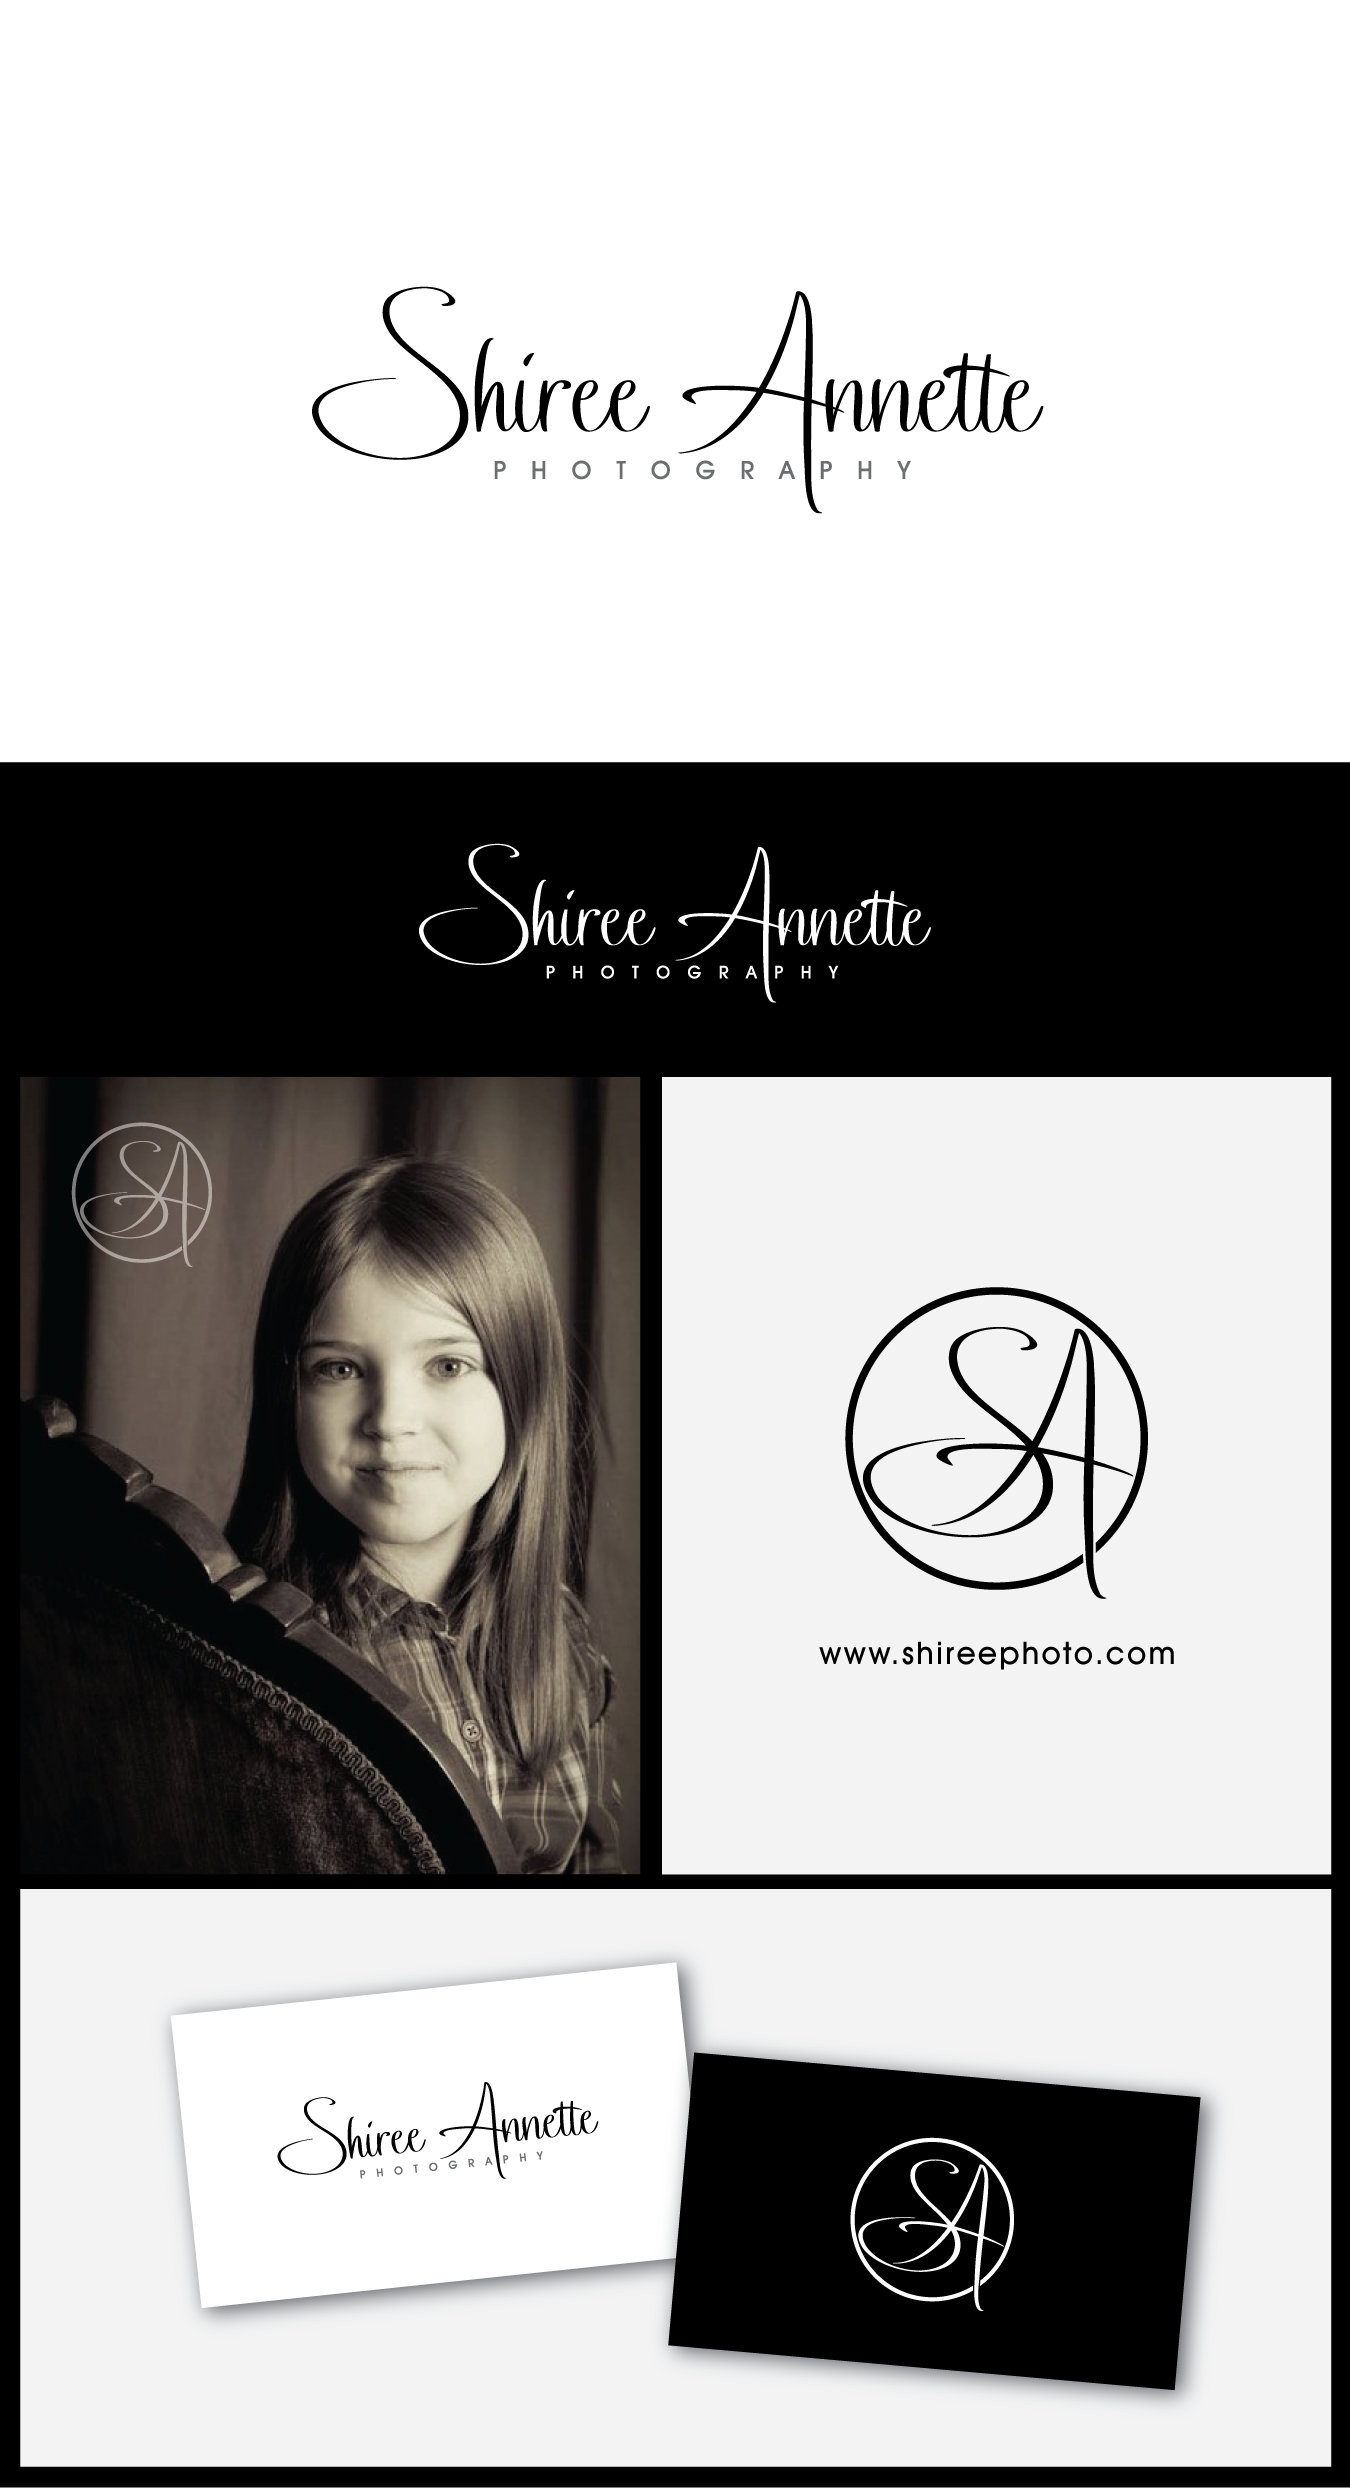 Shiree Annette Photography needs a new logo